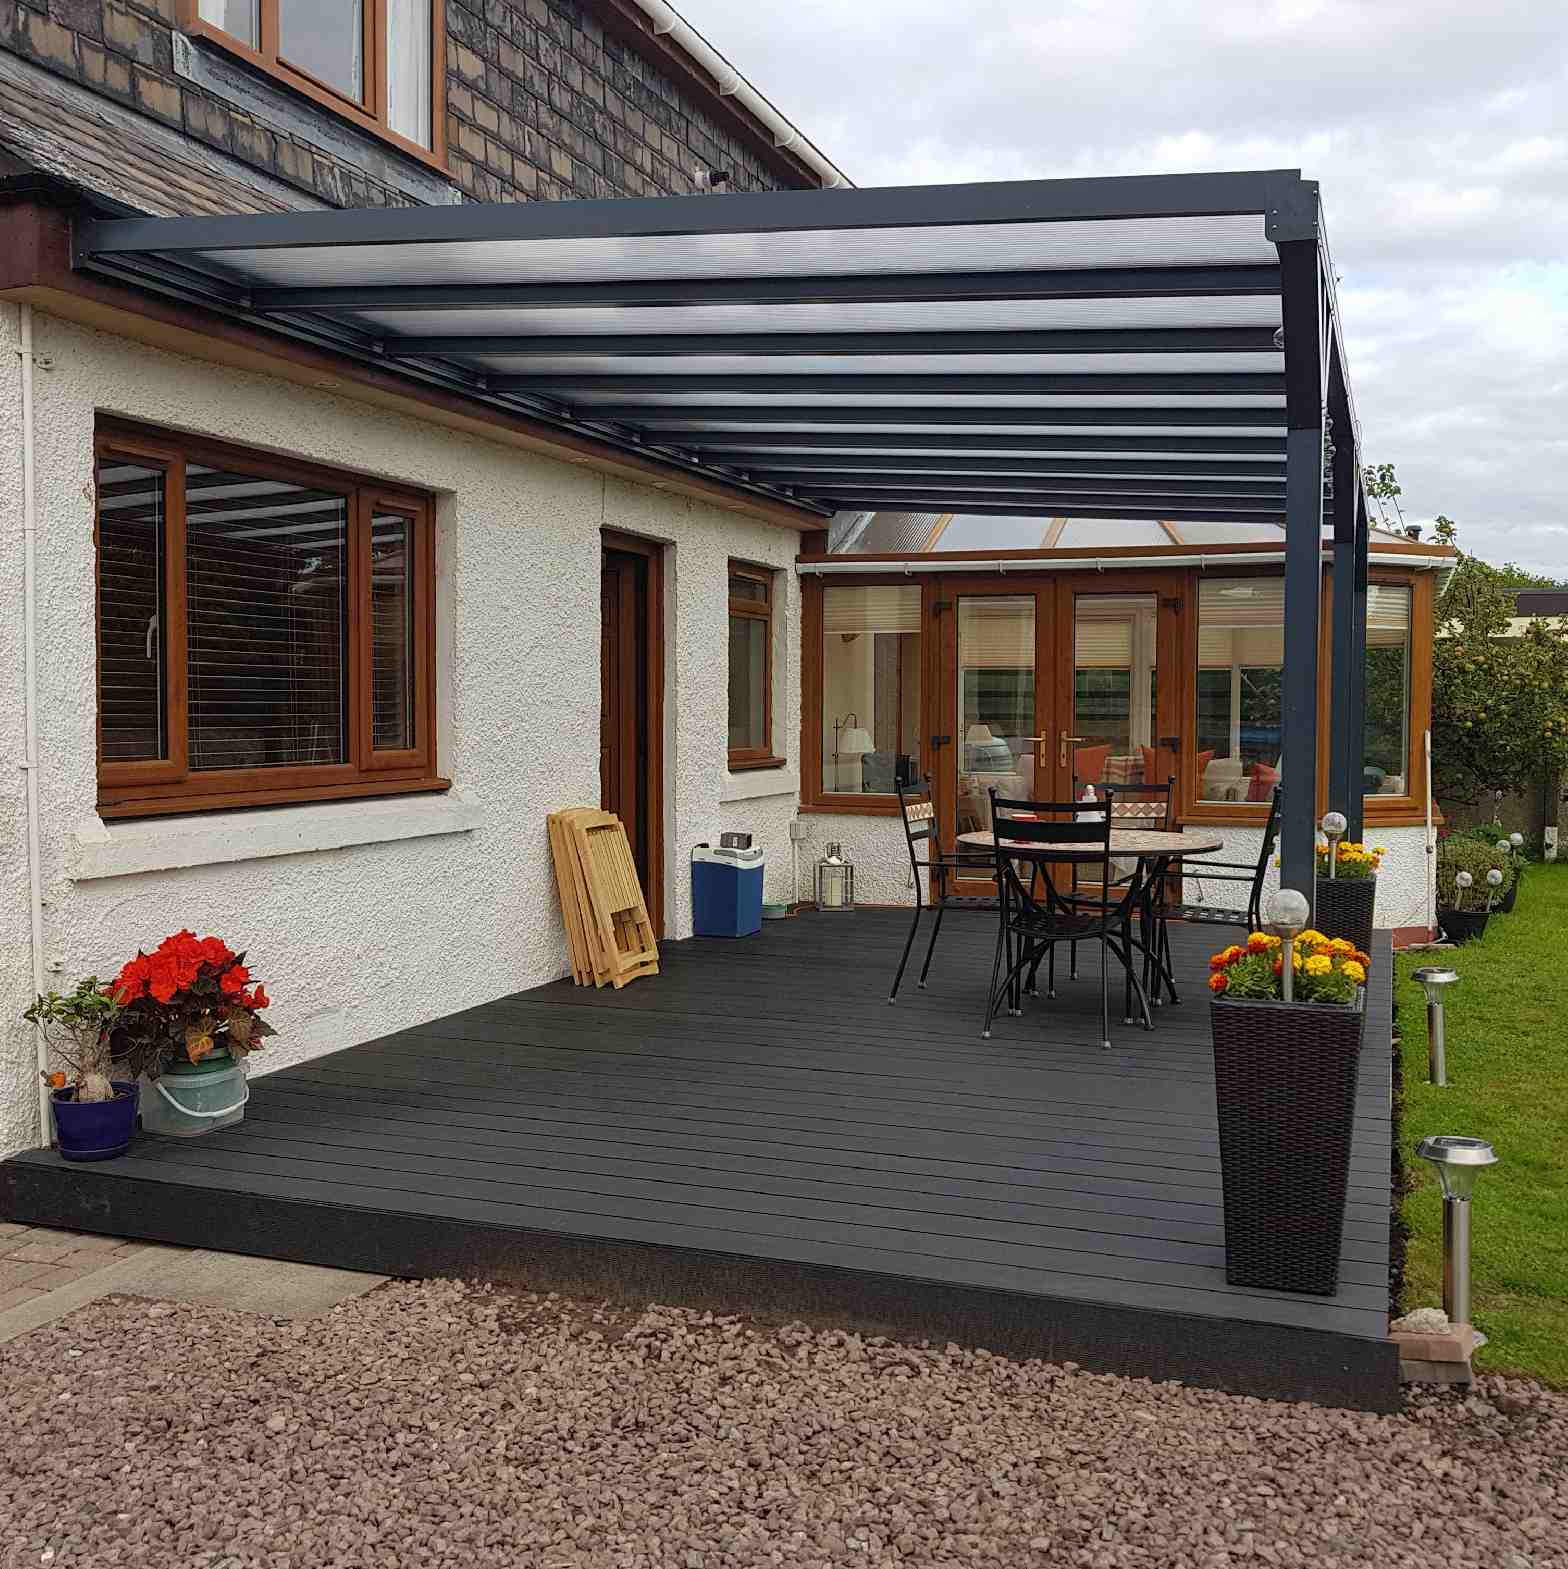 Buy Omega Verandah, Anthracite Grey, 16mm Polycarbonate Glazing - 12.0m (W) x 1.5m (P), (5) Supporting Posts online today